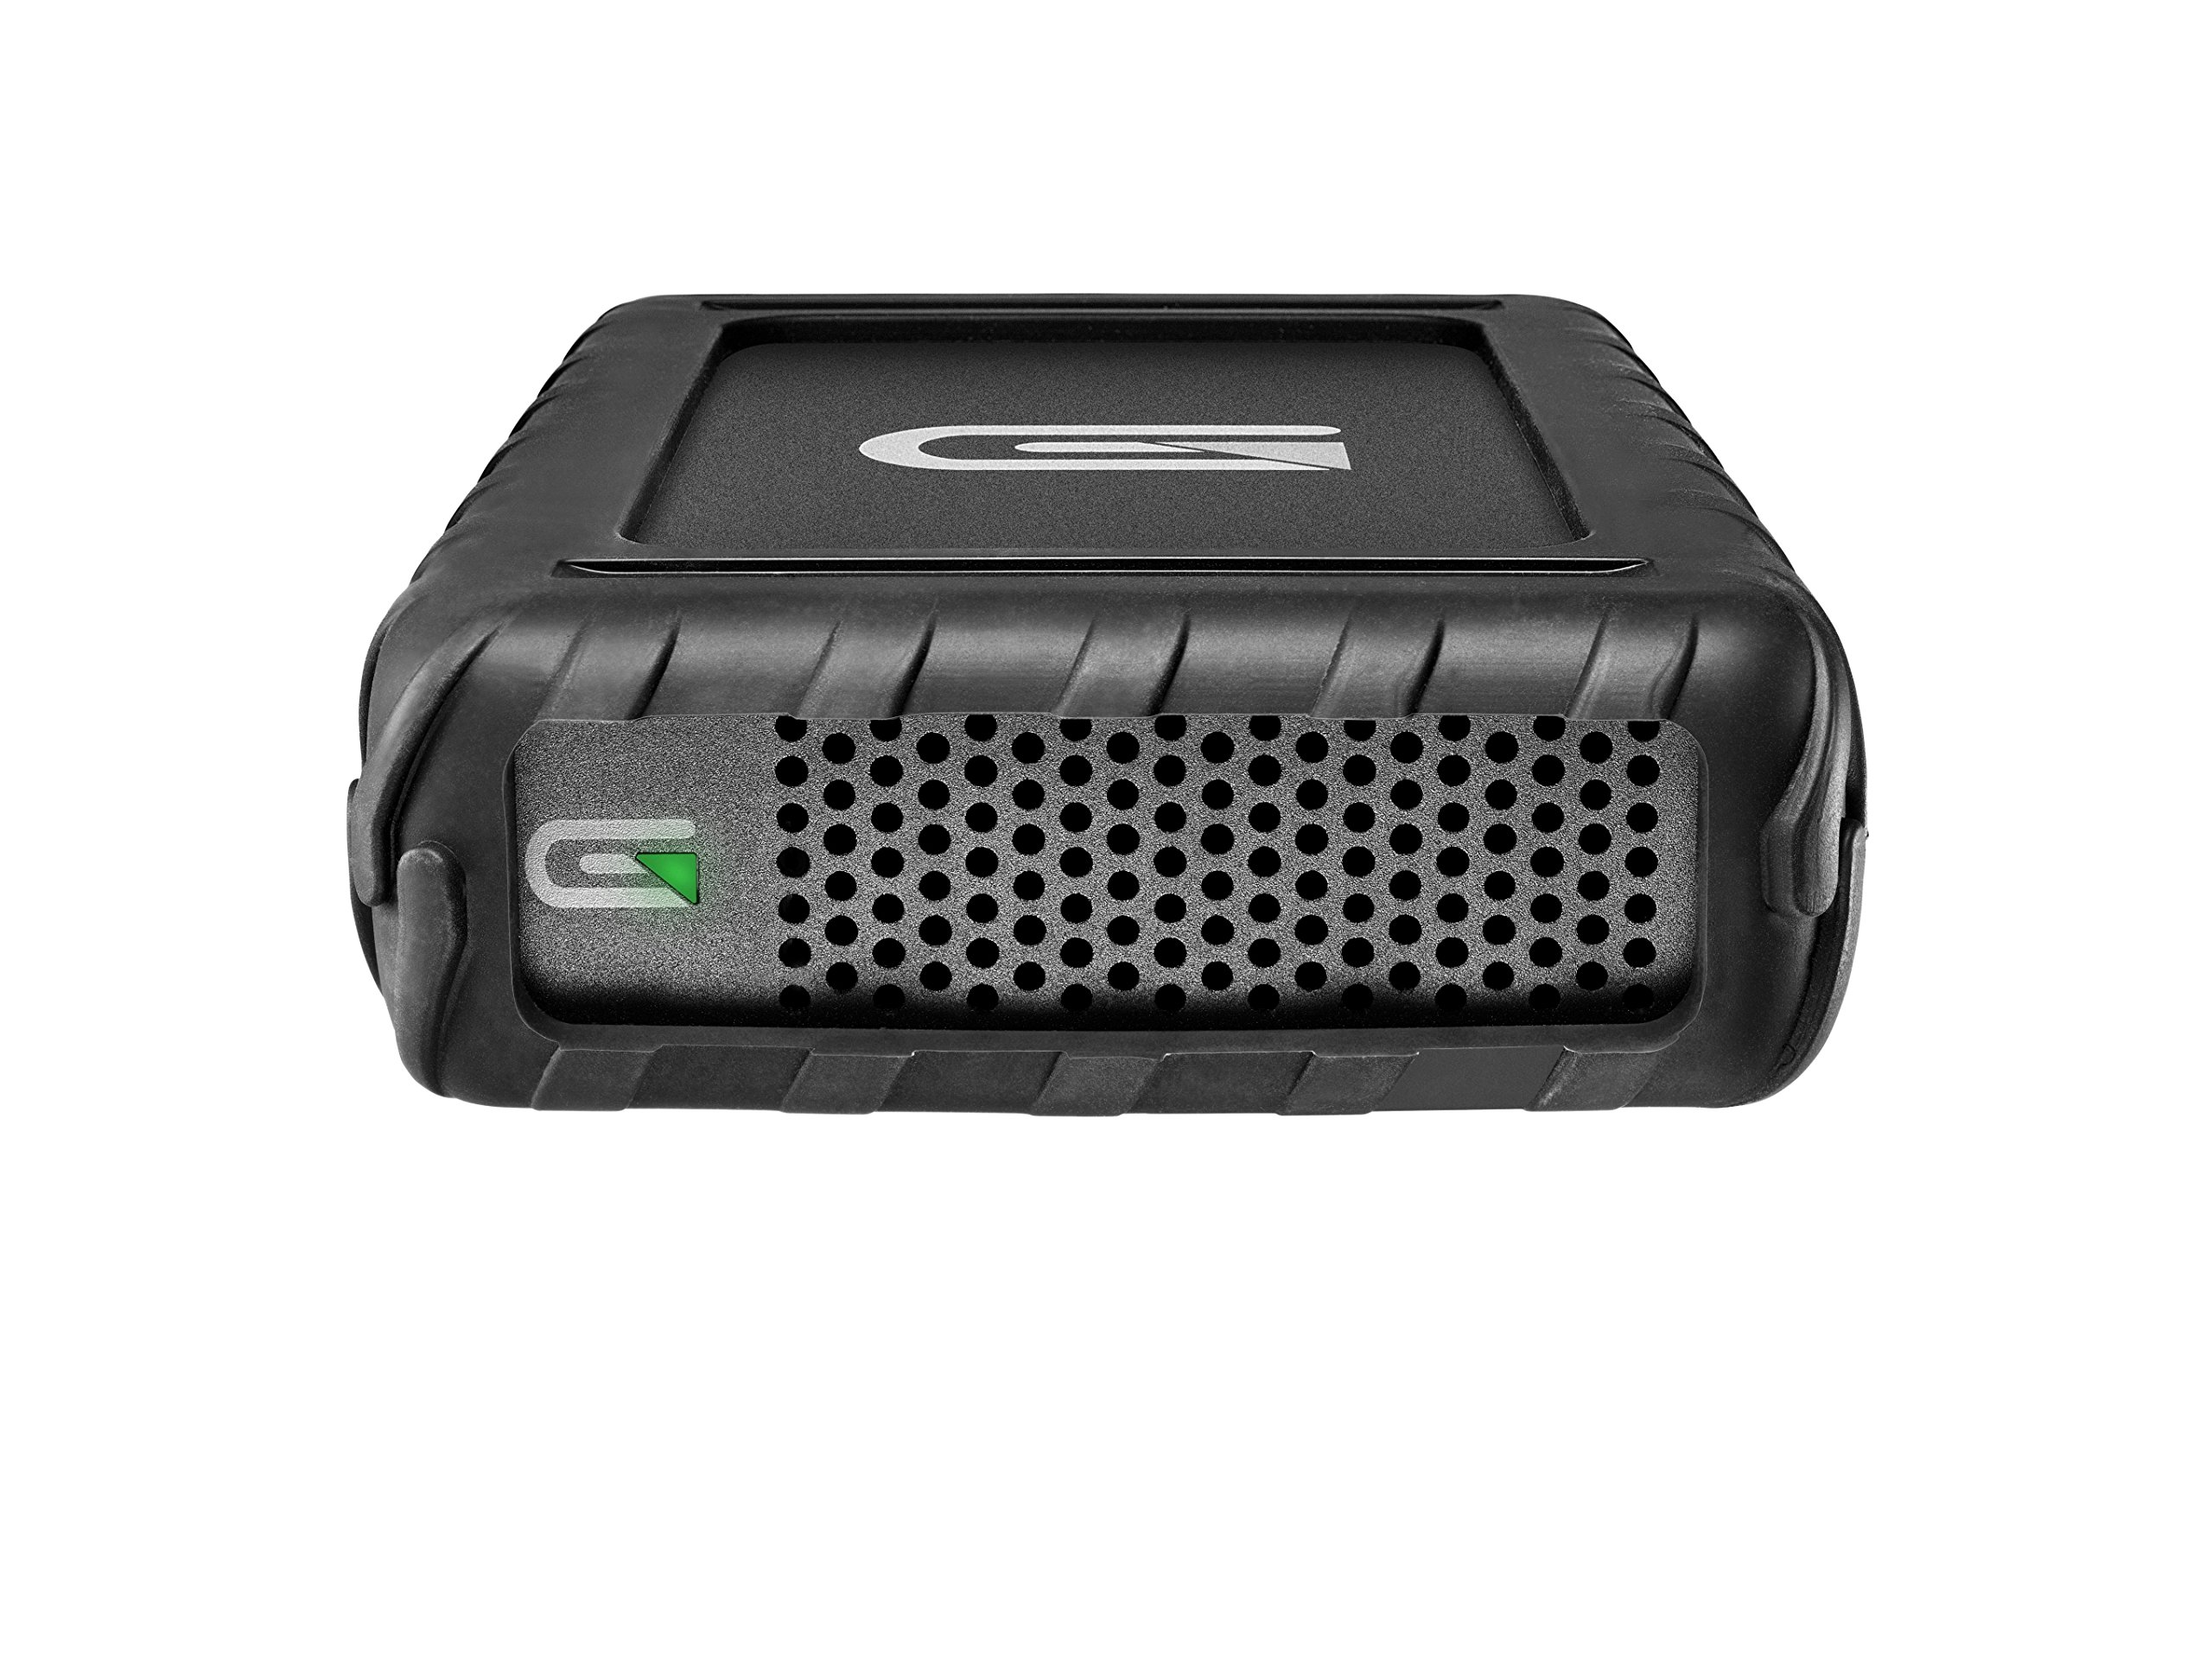 Glyph BlackBox Pro BBPR3000 3TB External Hard Drive 7200 RPM, USB-C (3.1,Gen2) by Glyph